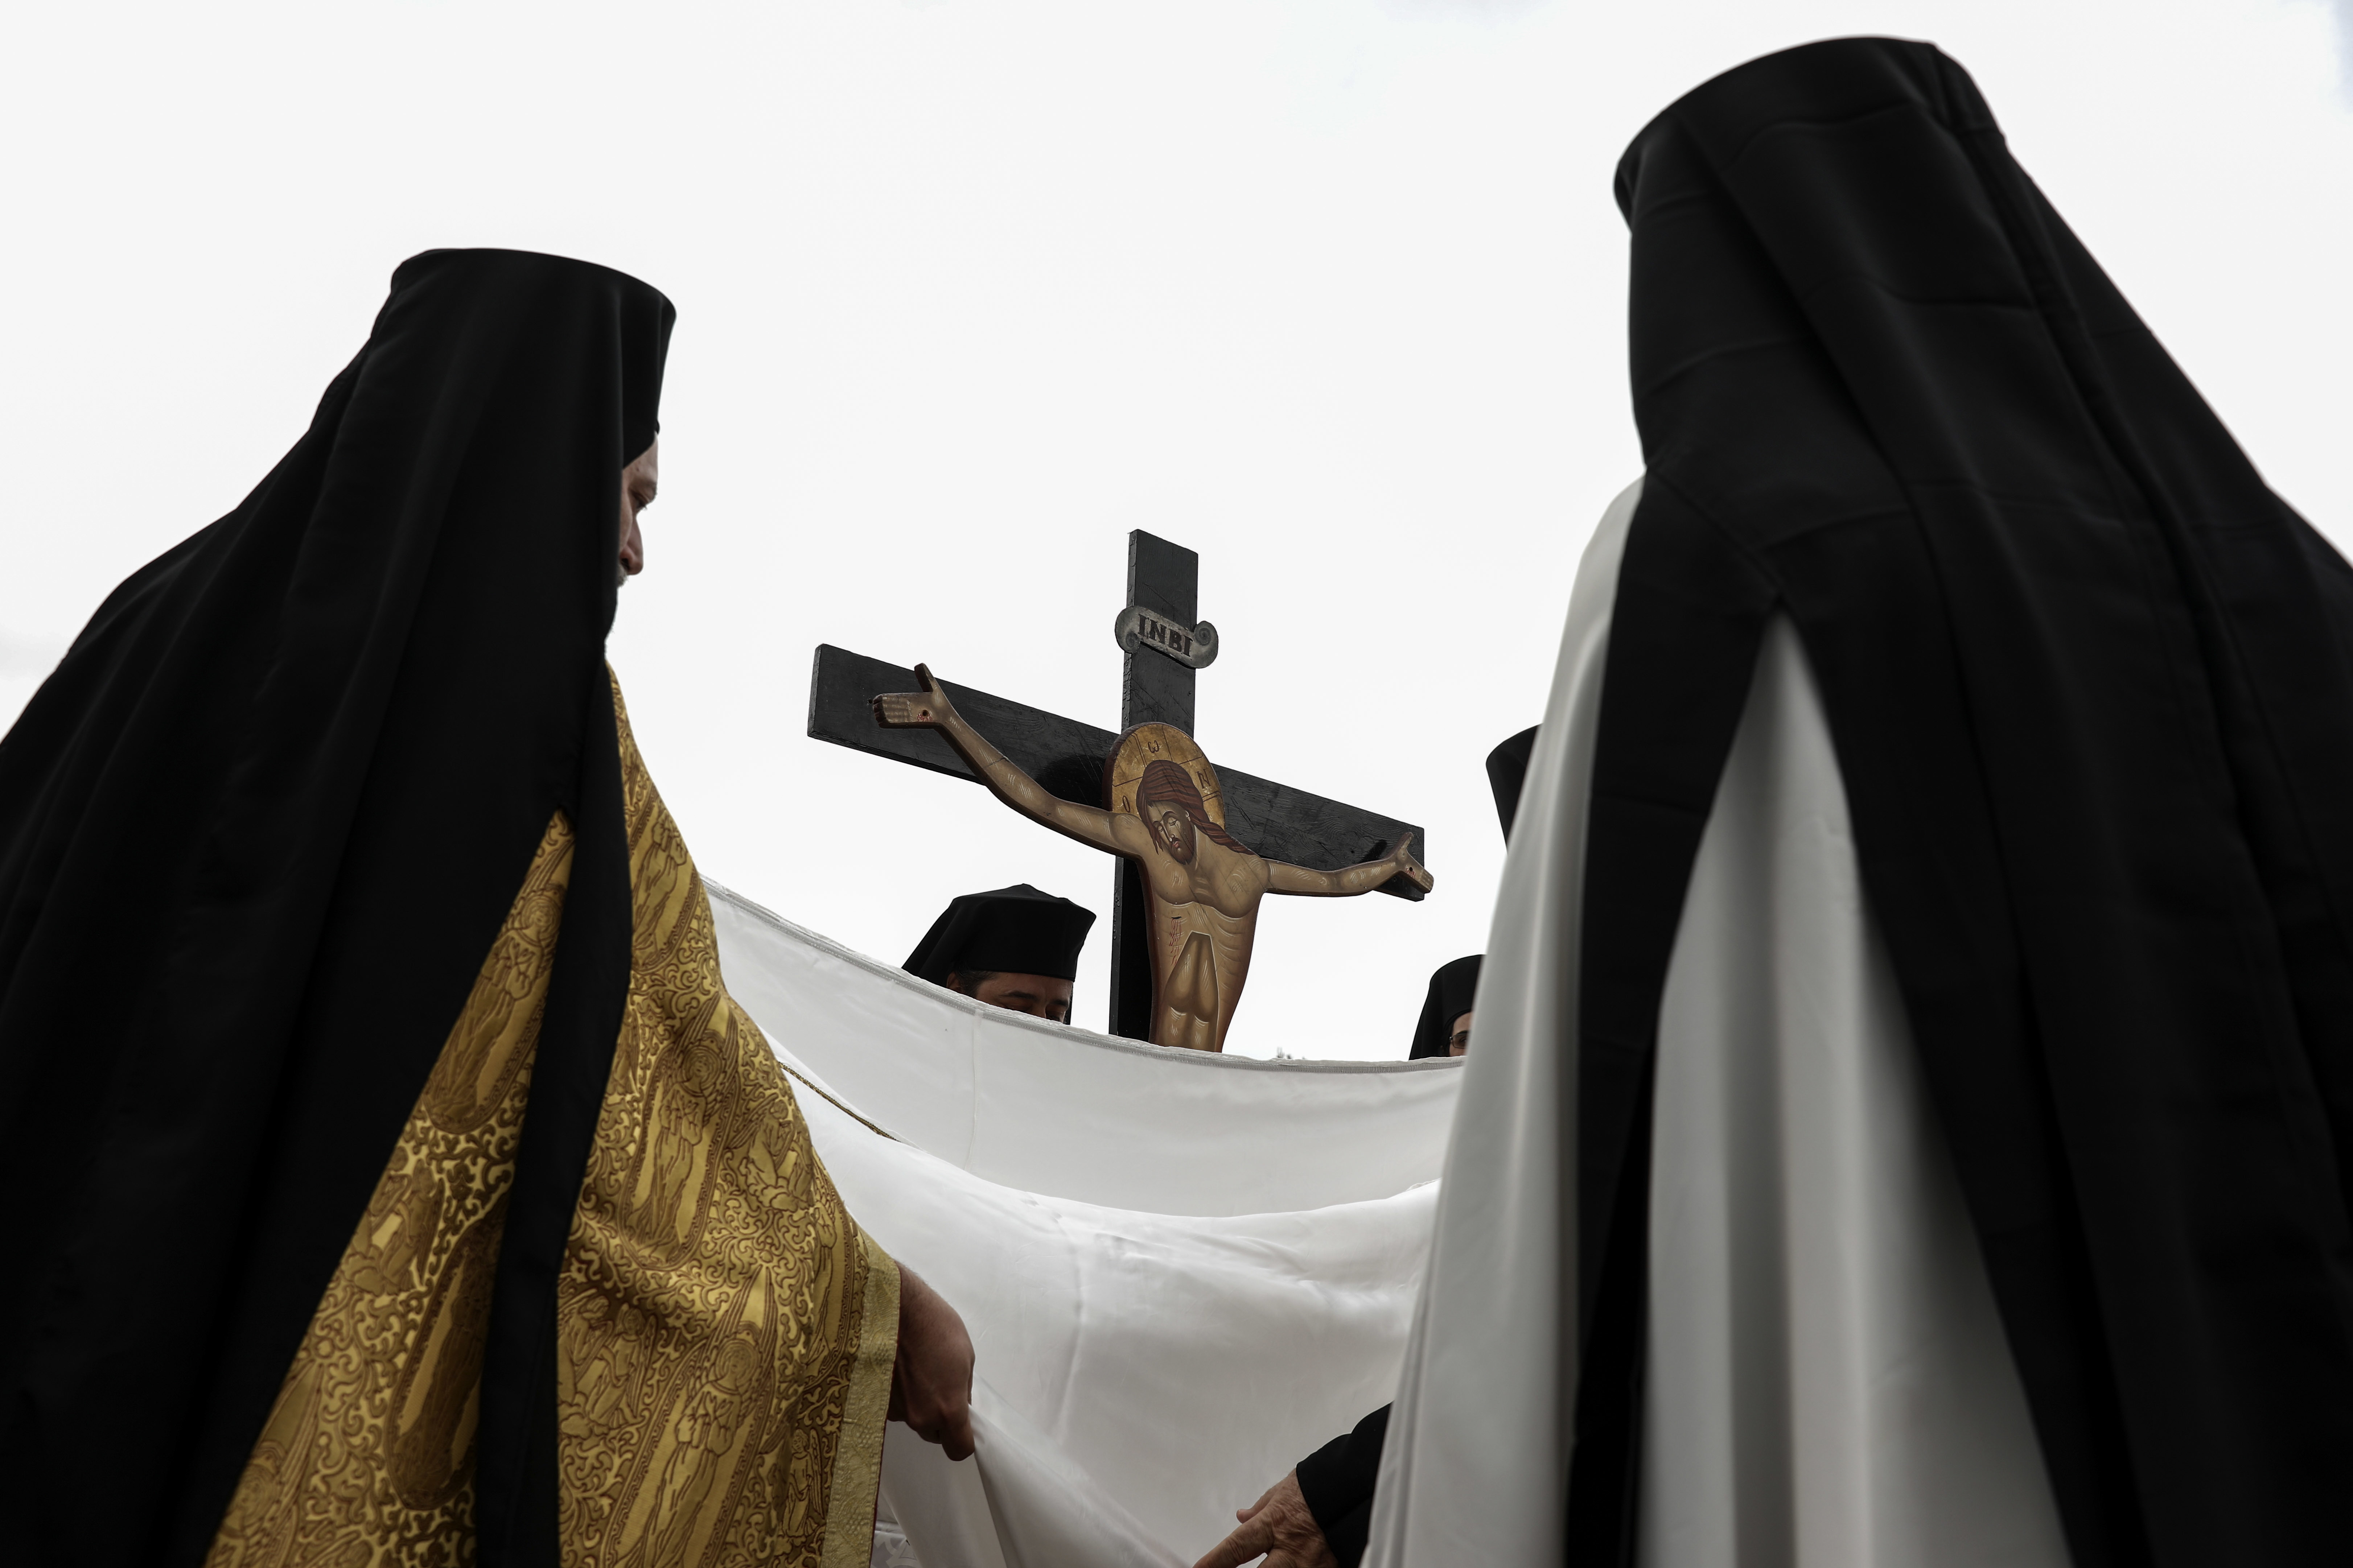 Greek Orthodox priests take part in a Good Friday reenactment of Christ being taken down from the crucifix, at the Pendeli Monastery, near Athens, on Friday, April 6, 2018. Orthodox Christians around the world celebrate Easter on Sunday, April 8. (AP Photo/Yorgos Karahalis)